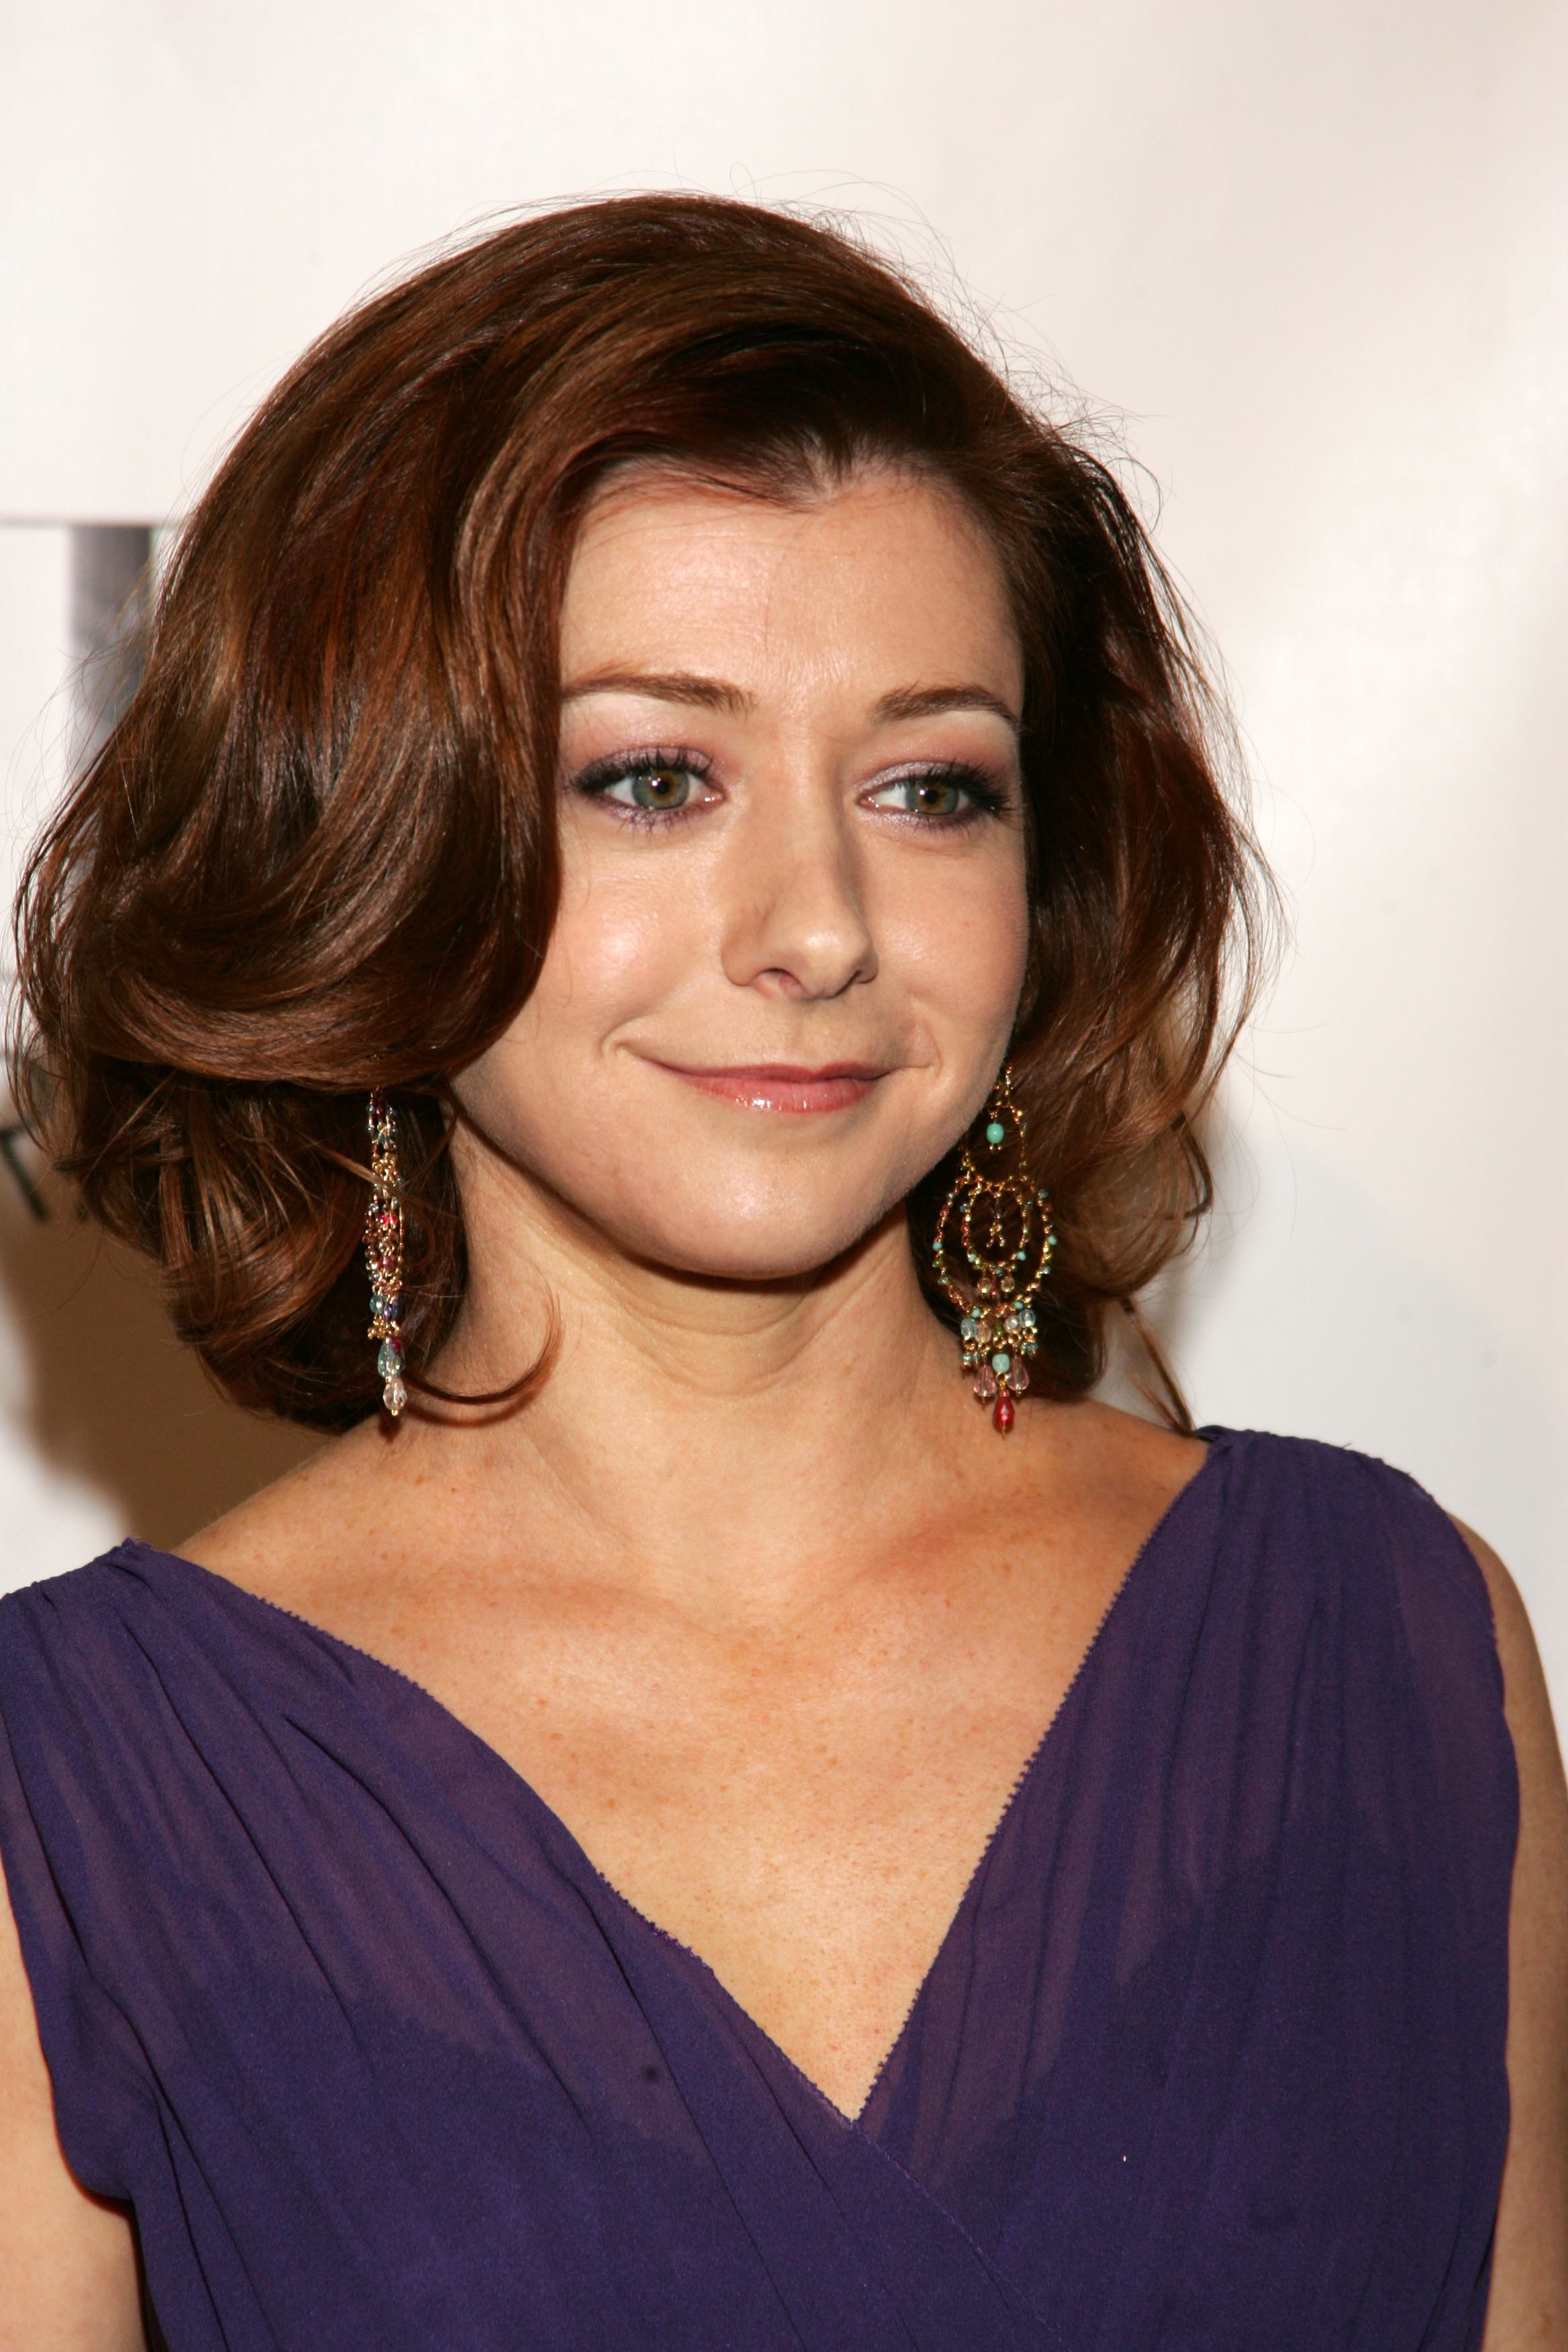 Alyson Hannigan woman HD Wallpaper